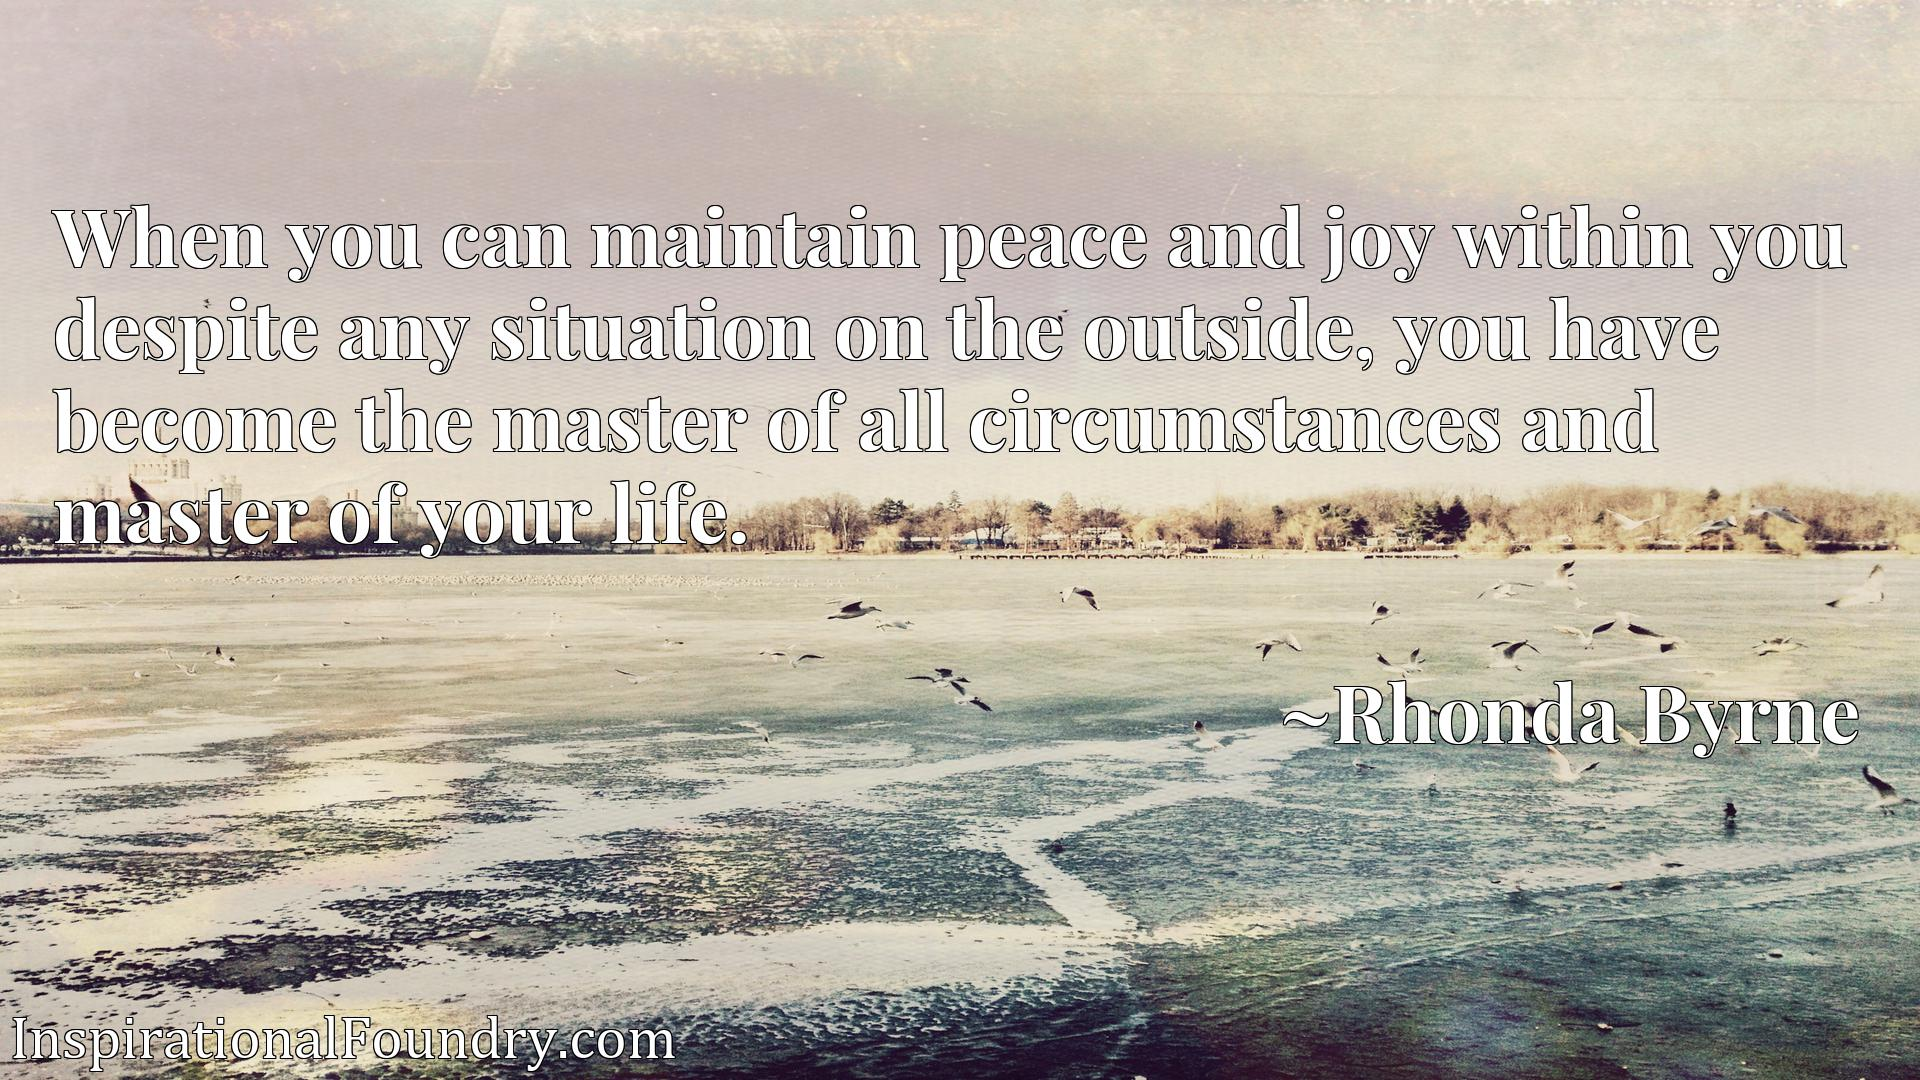 When you can maintain peace and joy within you despite any situation on the outside, you have become the master of all circumstances and master of your life.